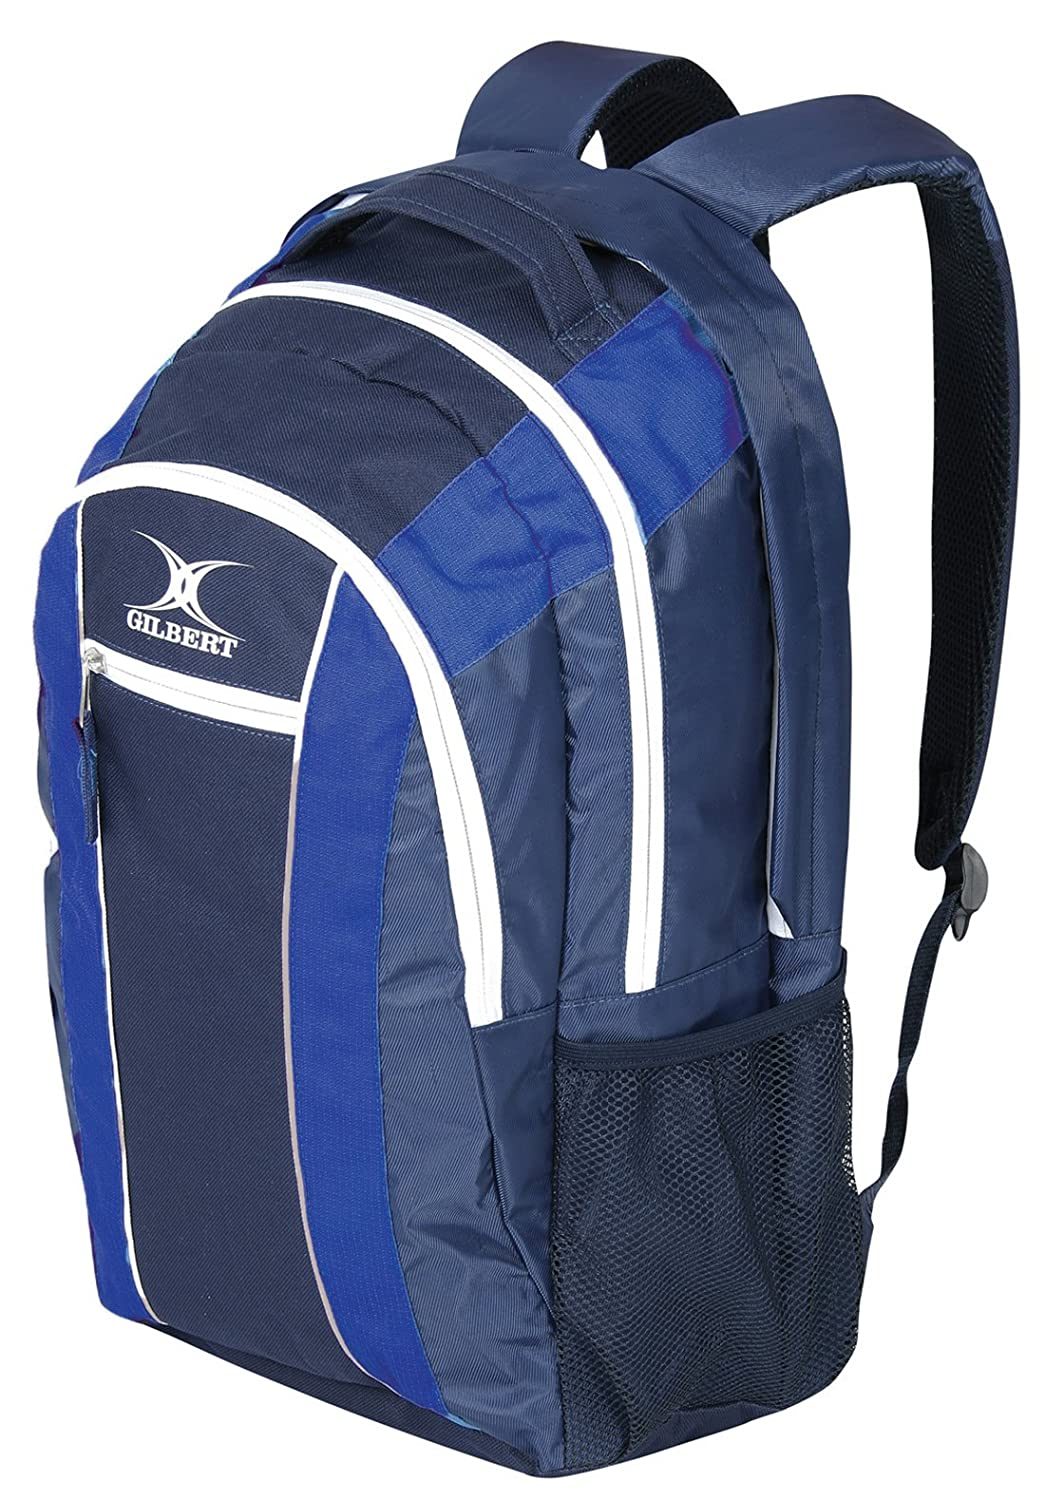 New Gilbert Rugby Club Luggage Rucksack Multi Paded Compartment Team Kit Bag